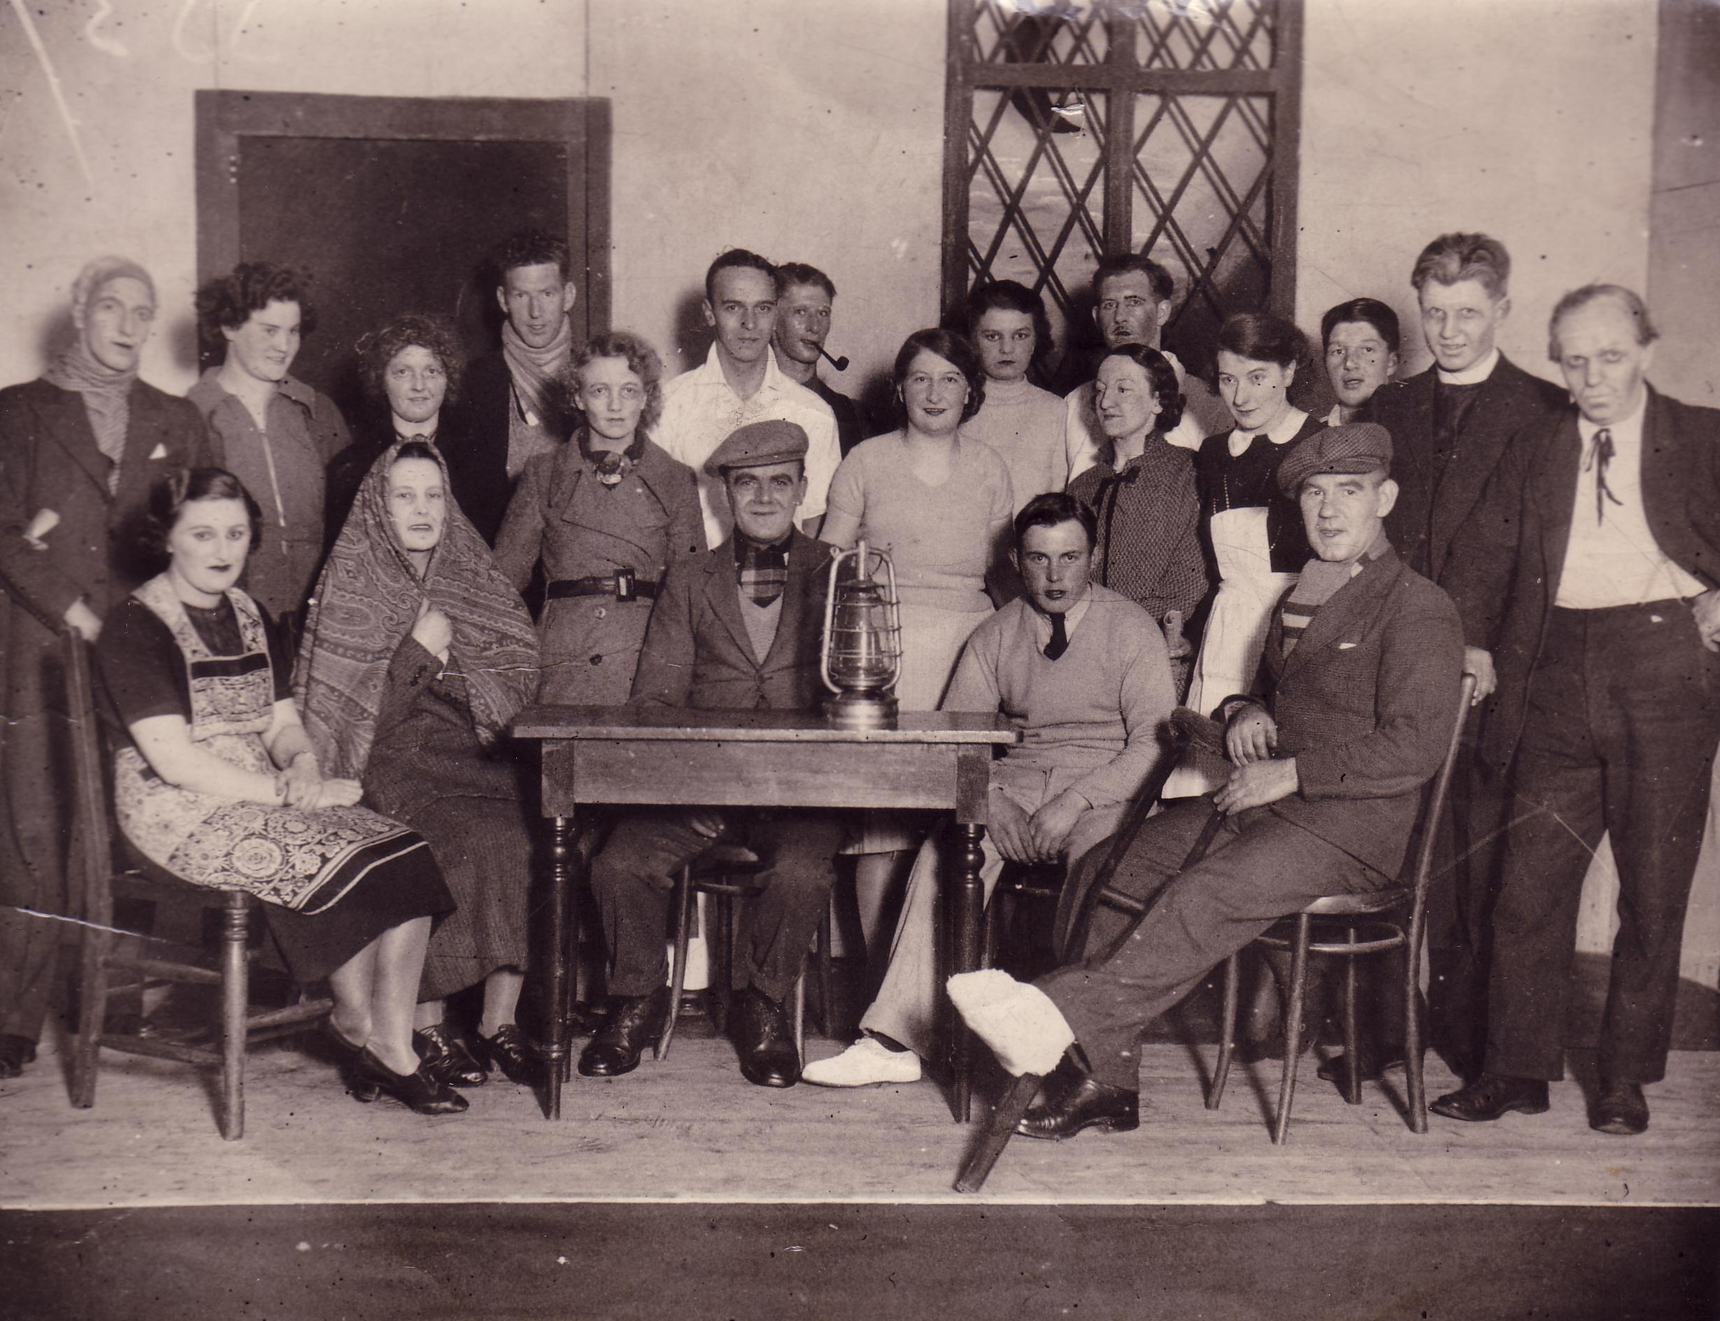 Cast Of Amateur Dramatic Company Performing Play At Dunning School 1940s